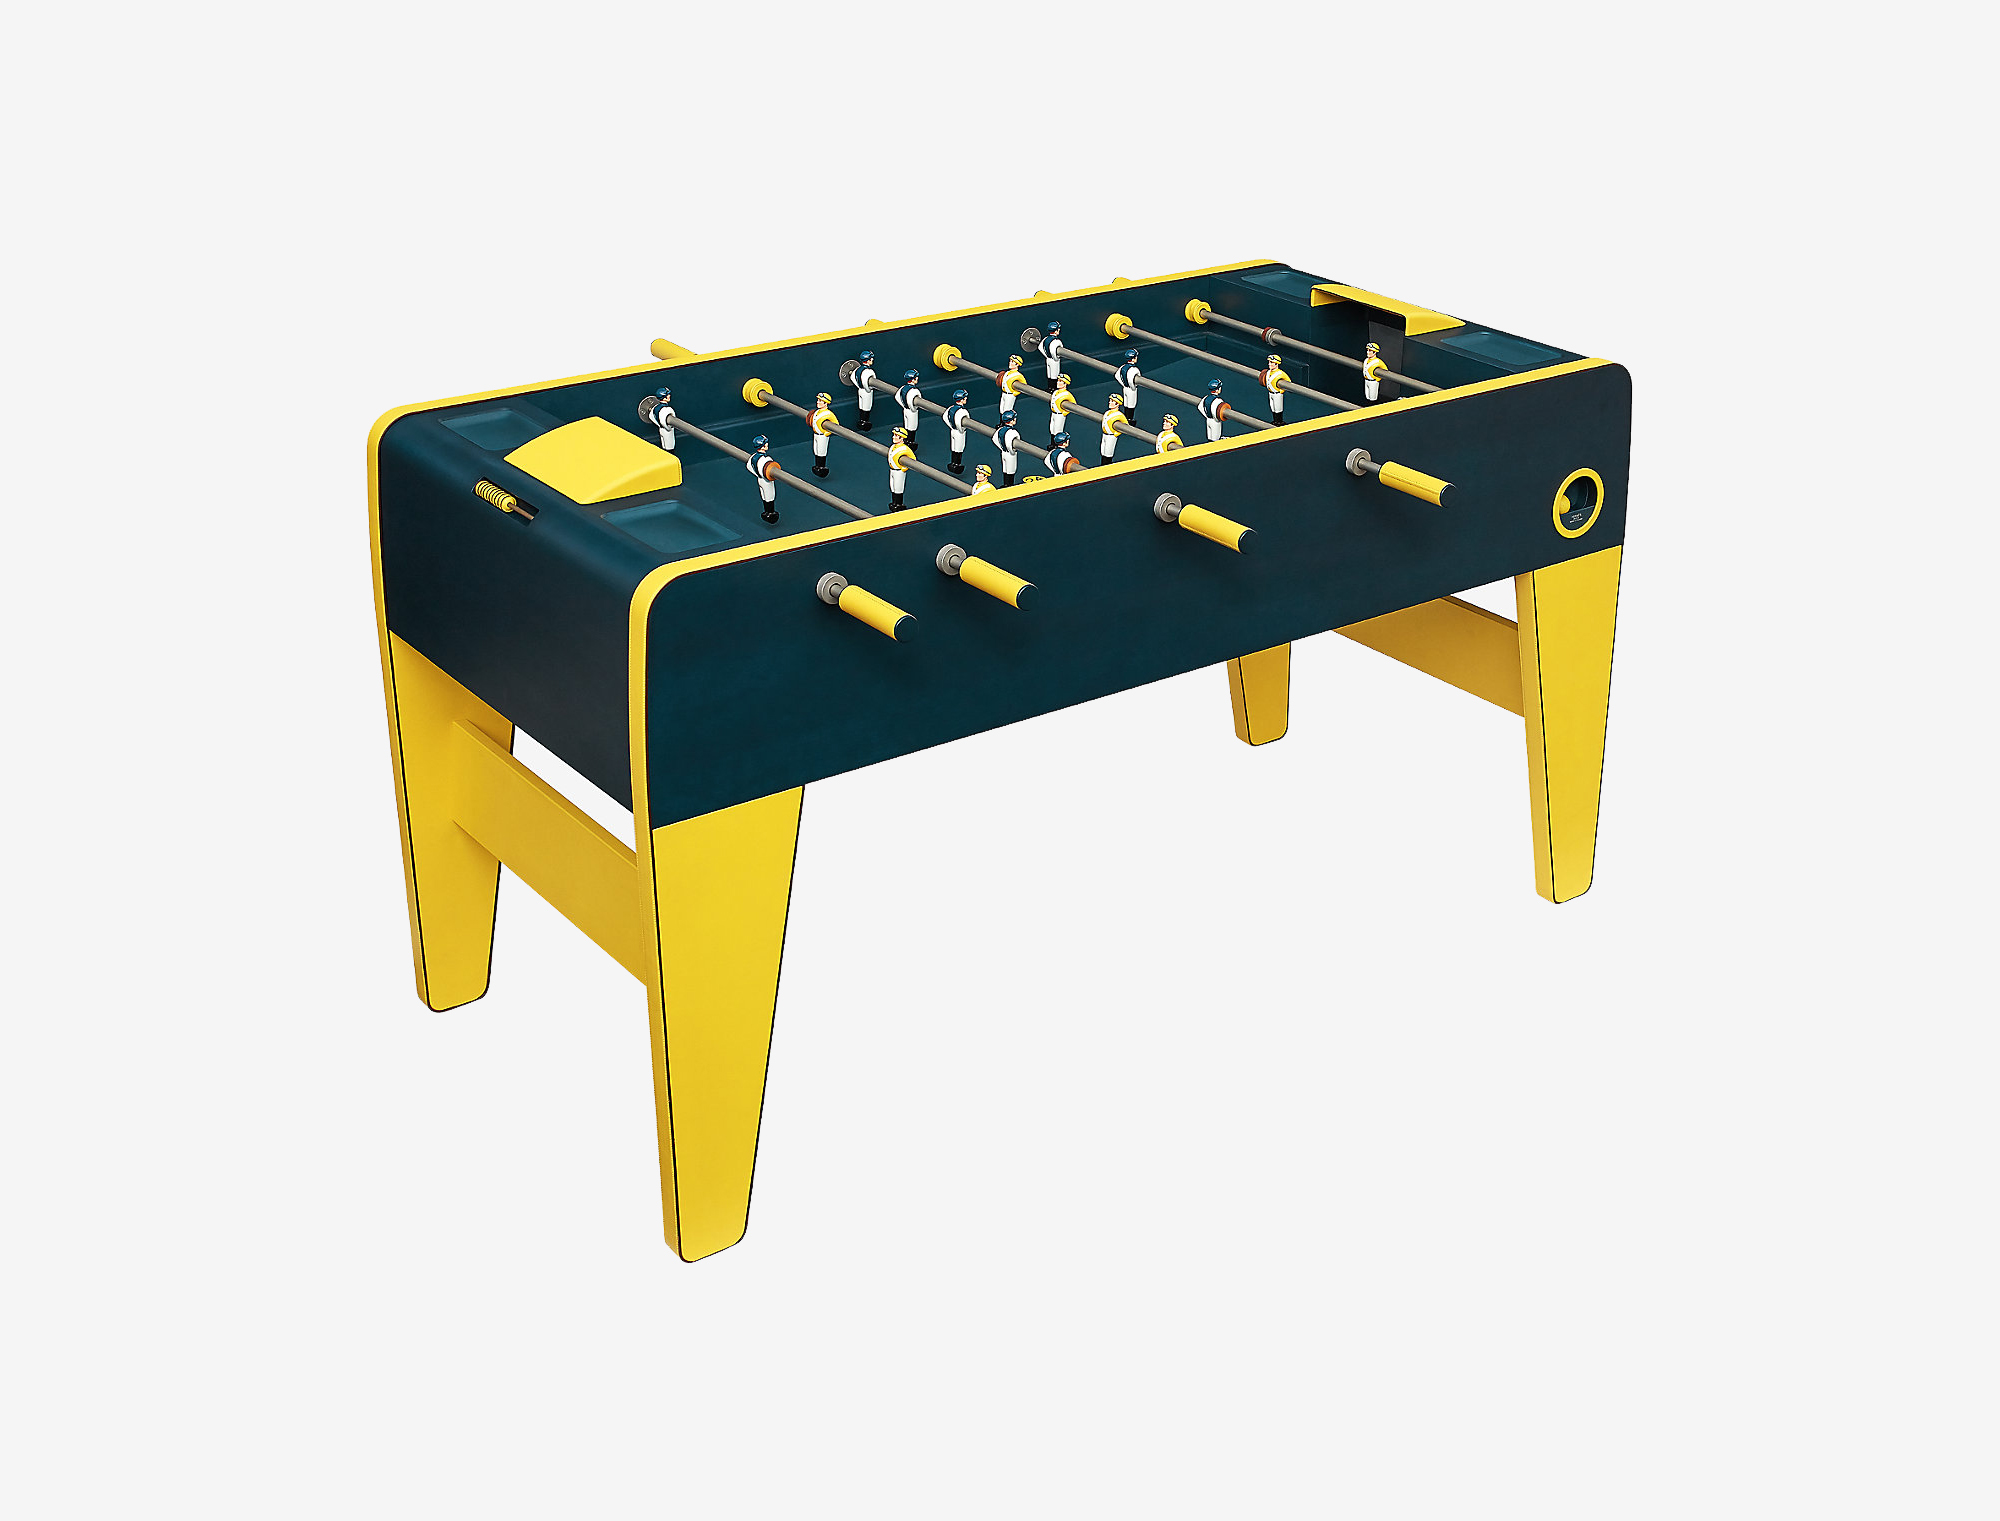 foosball-table--5030227 00-front-1-300-0-1521-1521